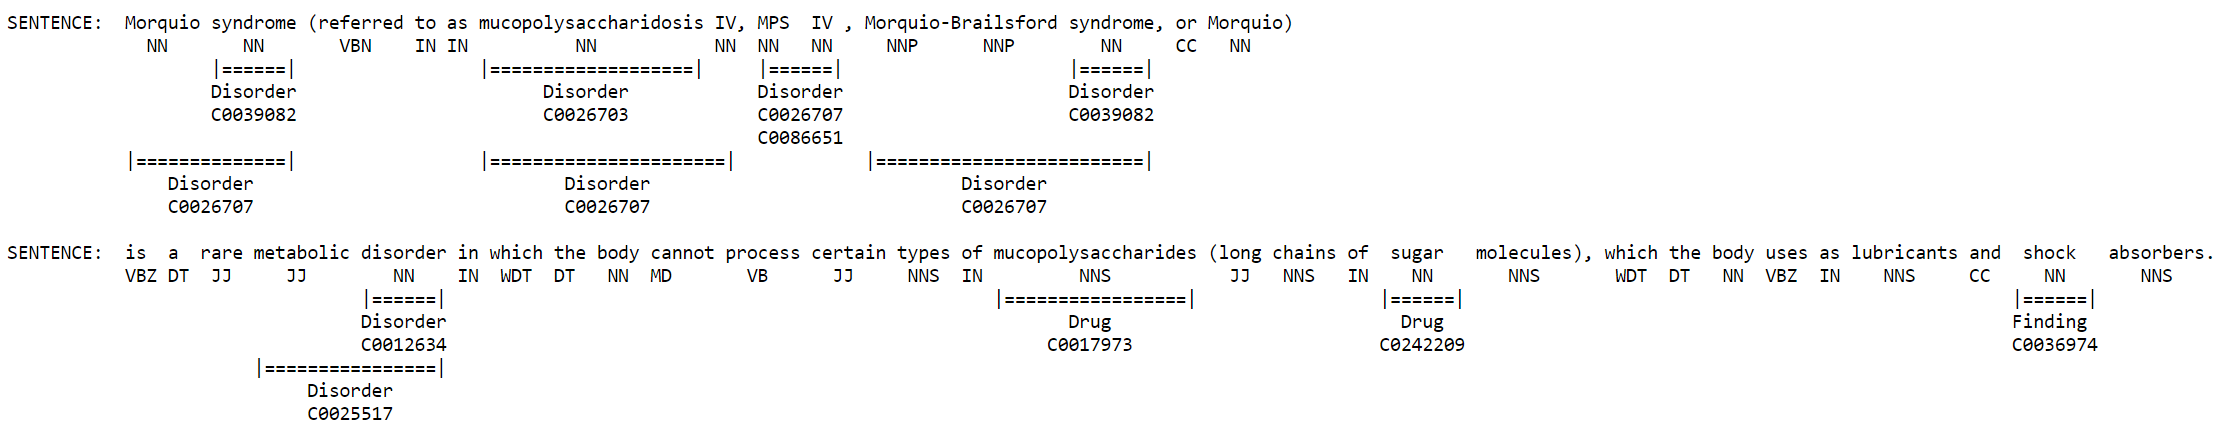 Medical NER Example using cTAKES